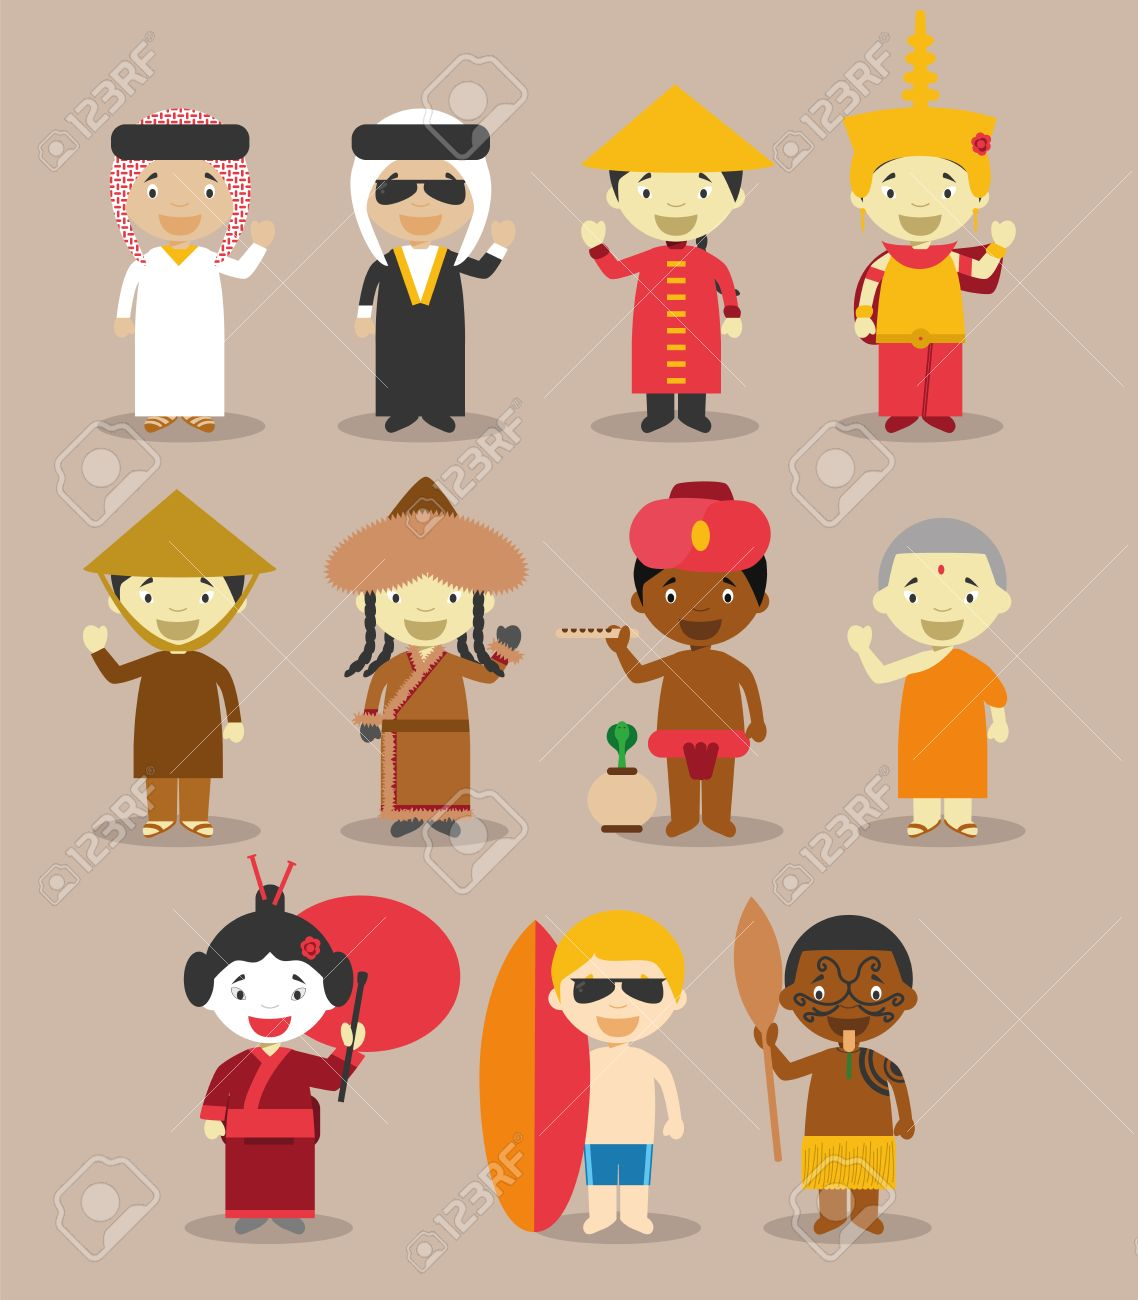 62ff0c3fb Kids and vector nationalities of the world: Asia and OceaniaAustralia  September 3. Set of 11 different characters dressed in national costumes 9  from Asia ...